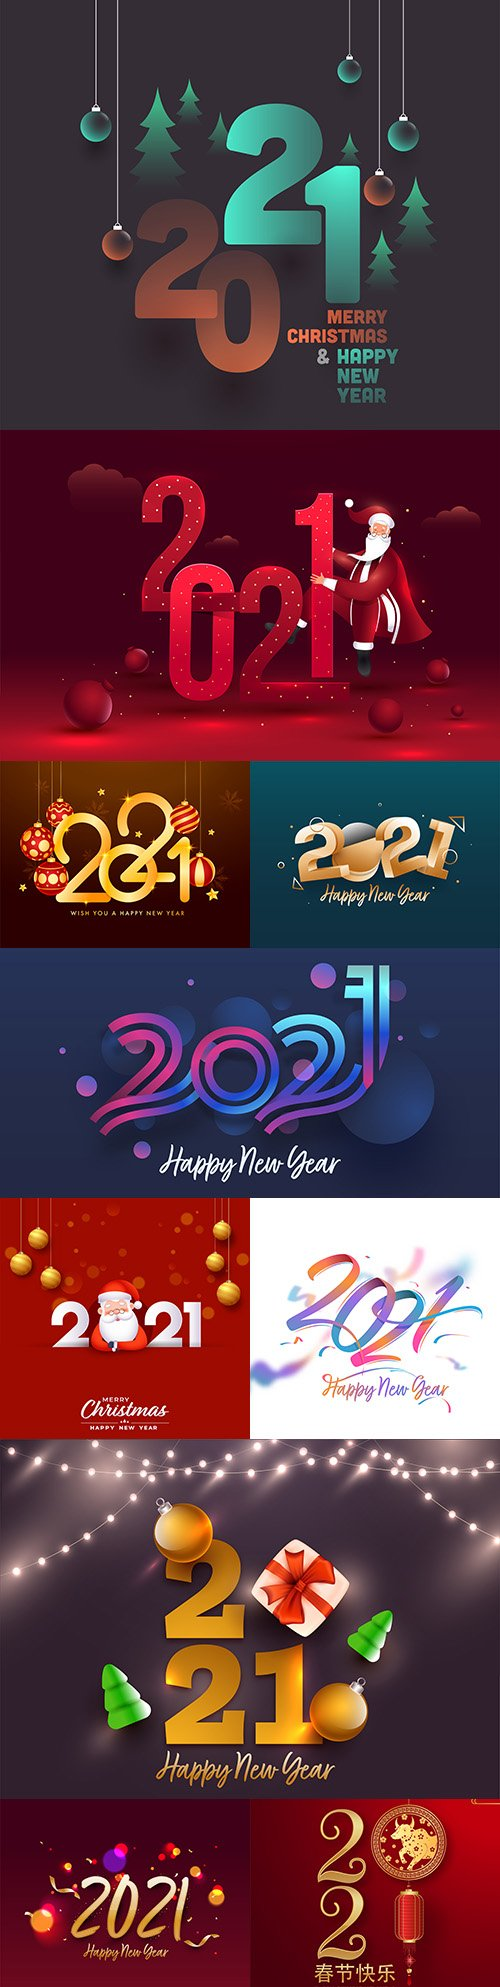 Decorative text with New Year 2021 colorful design